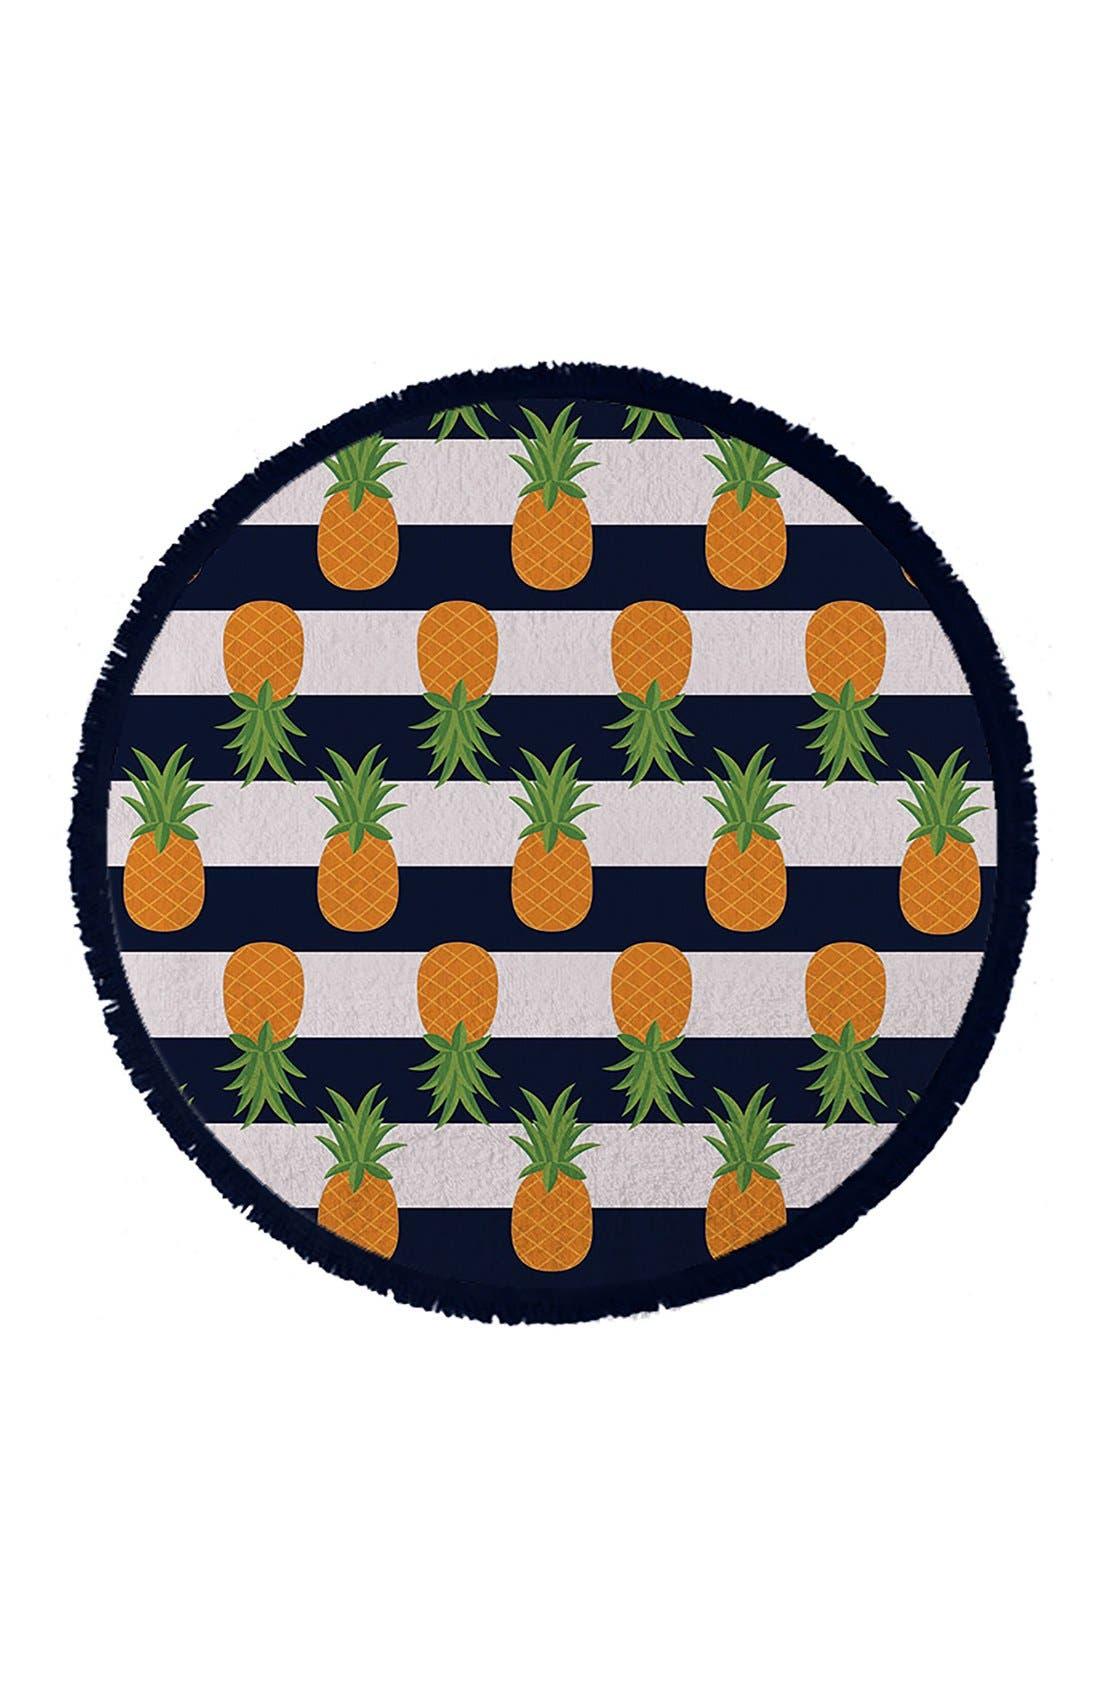 Alternate Image 1 Selected - Round Towel Co. Nautical Pineapple Towel